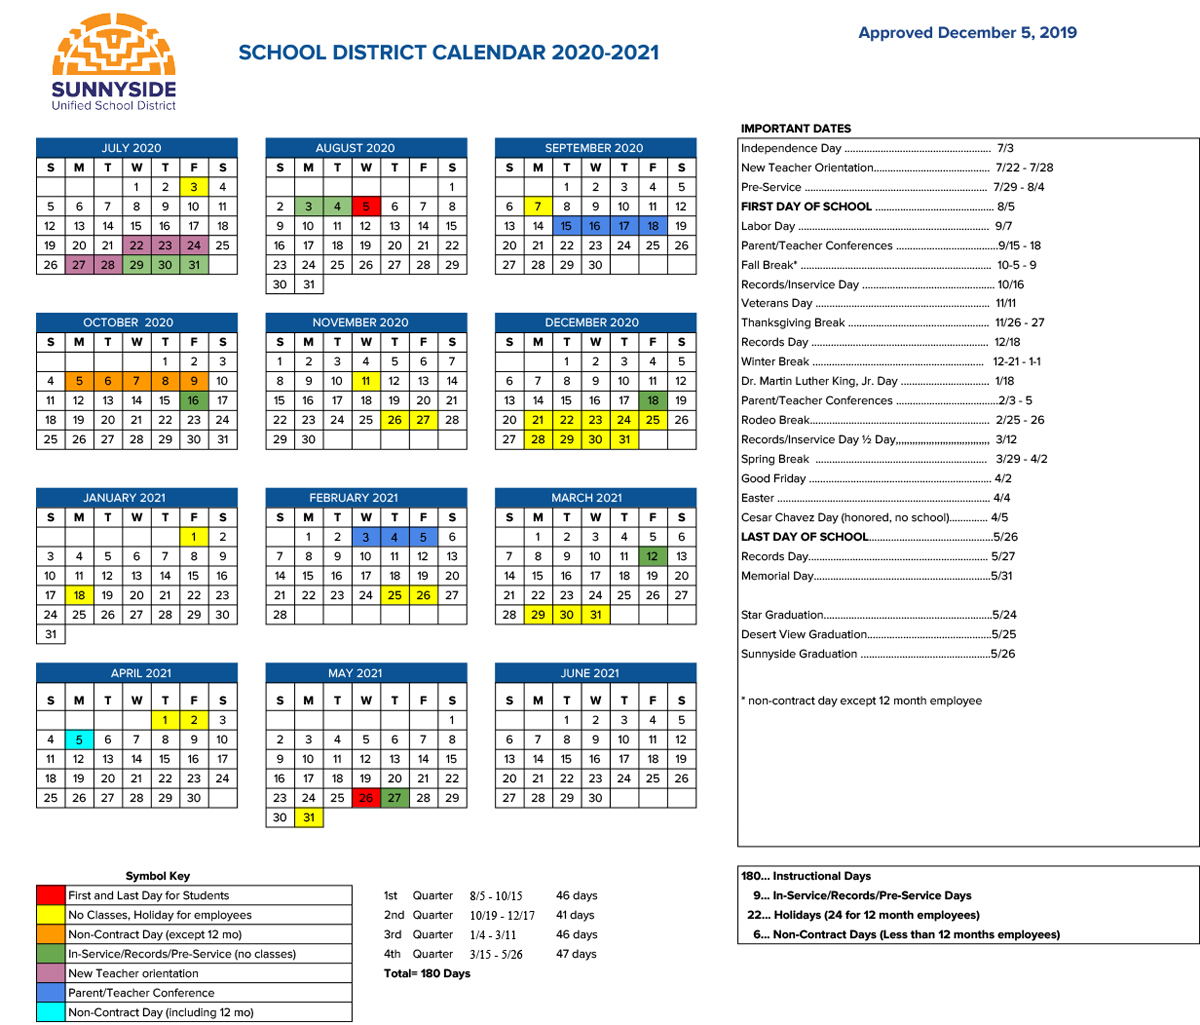 Academic Calendar | Sunnyside Unified School District throughout East Orange H S Calendar